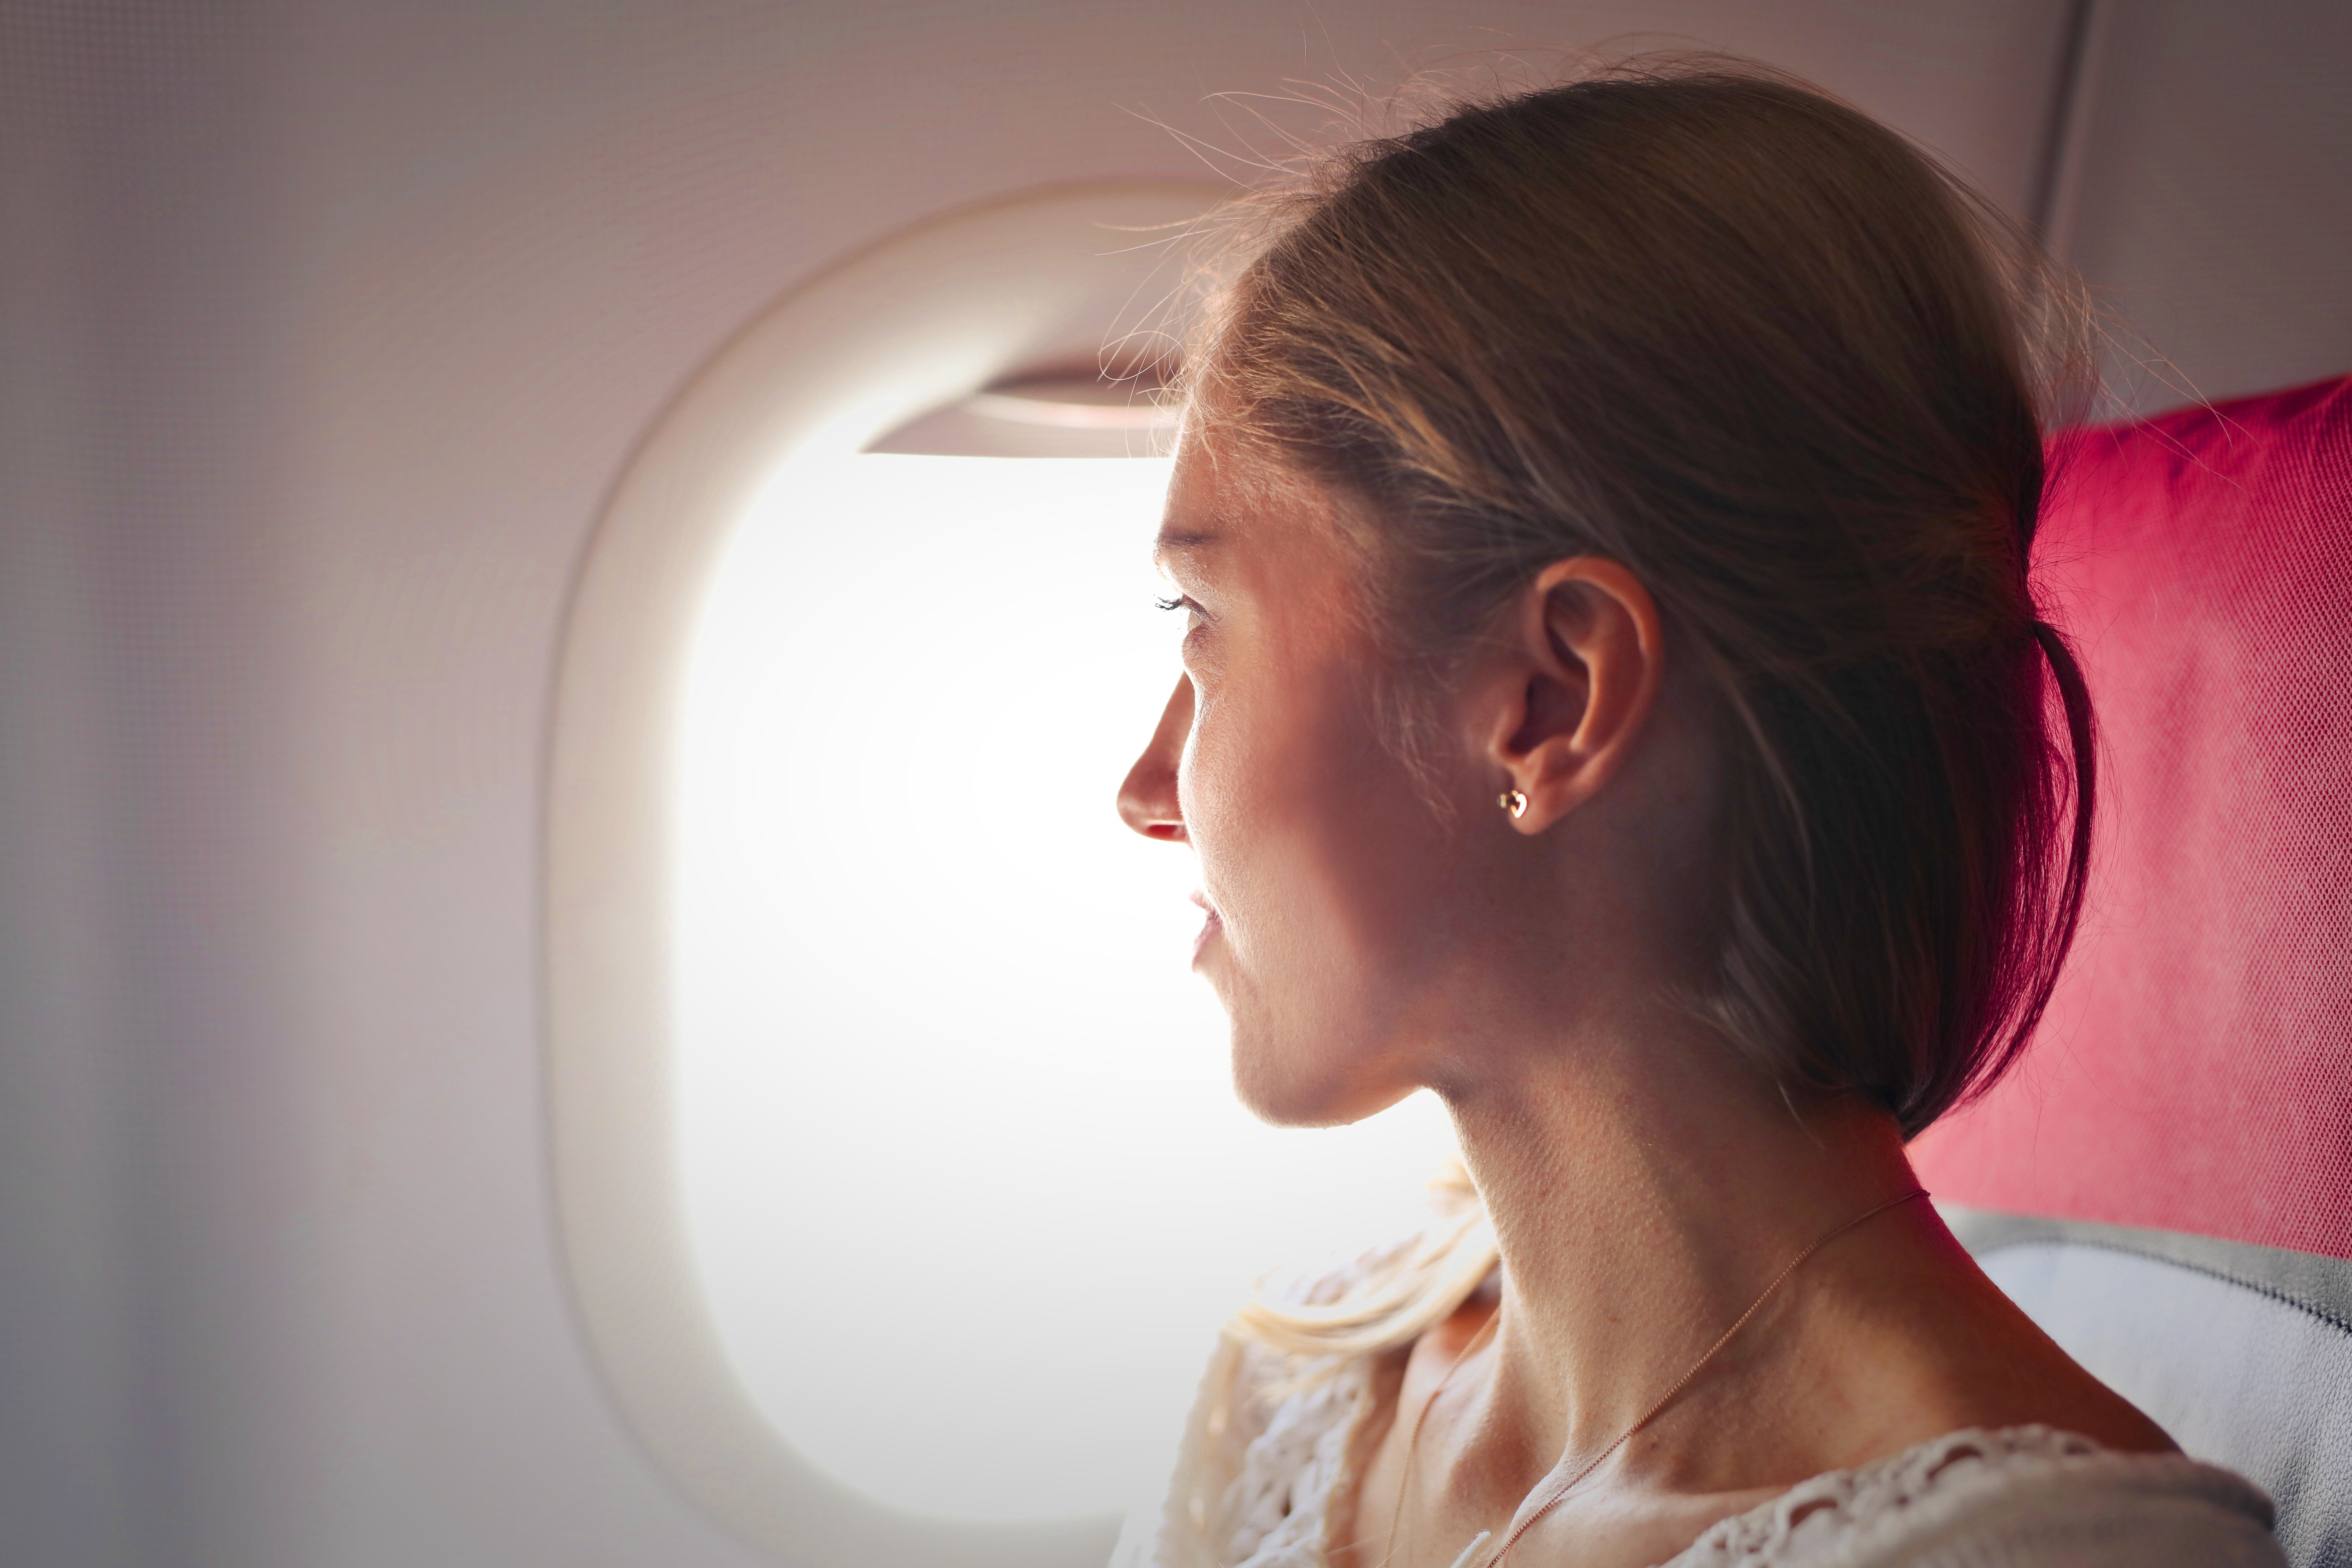 Woman looking through the window in the plane | Source: Pexels